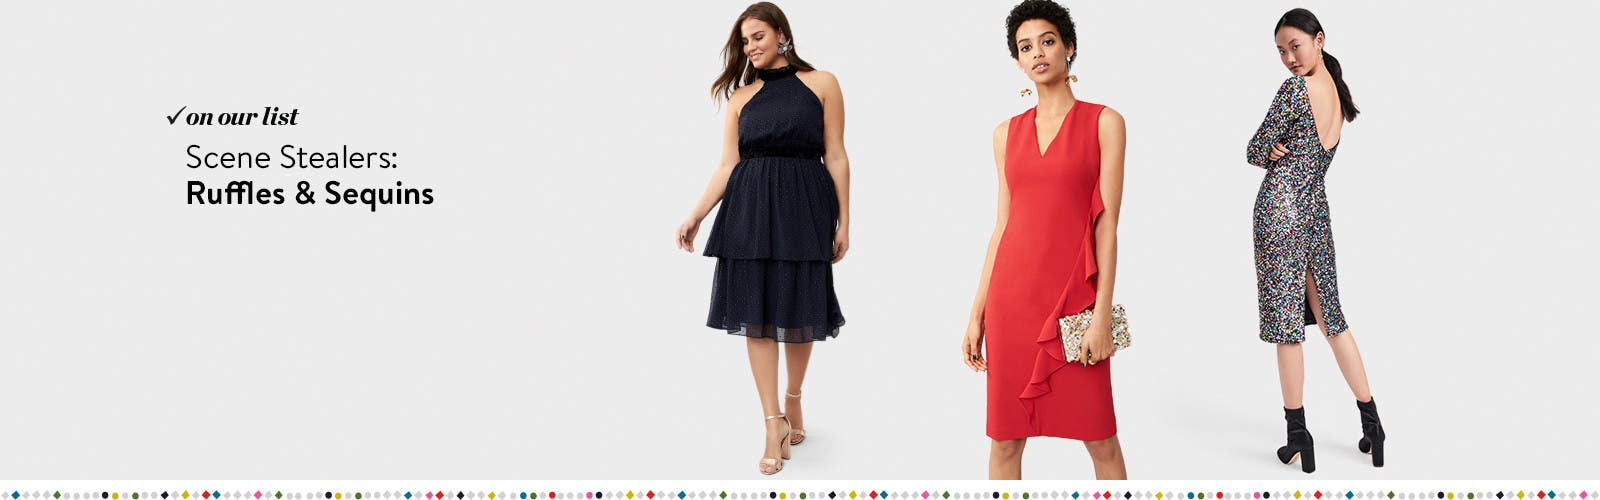 Womens sequined dresses nordstrom scene stealers ruffles and sequins ombrellifo Choice Image